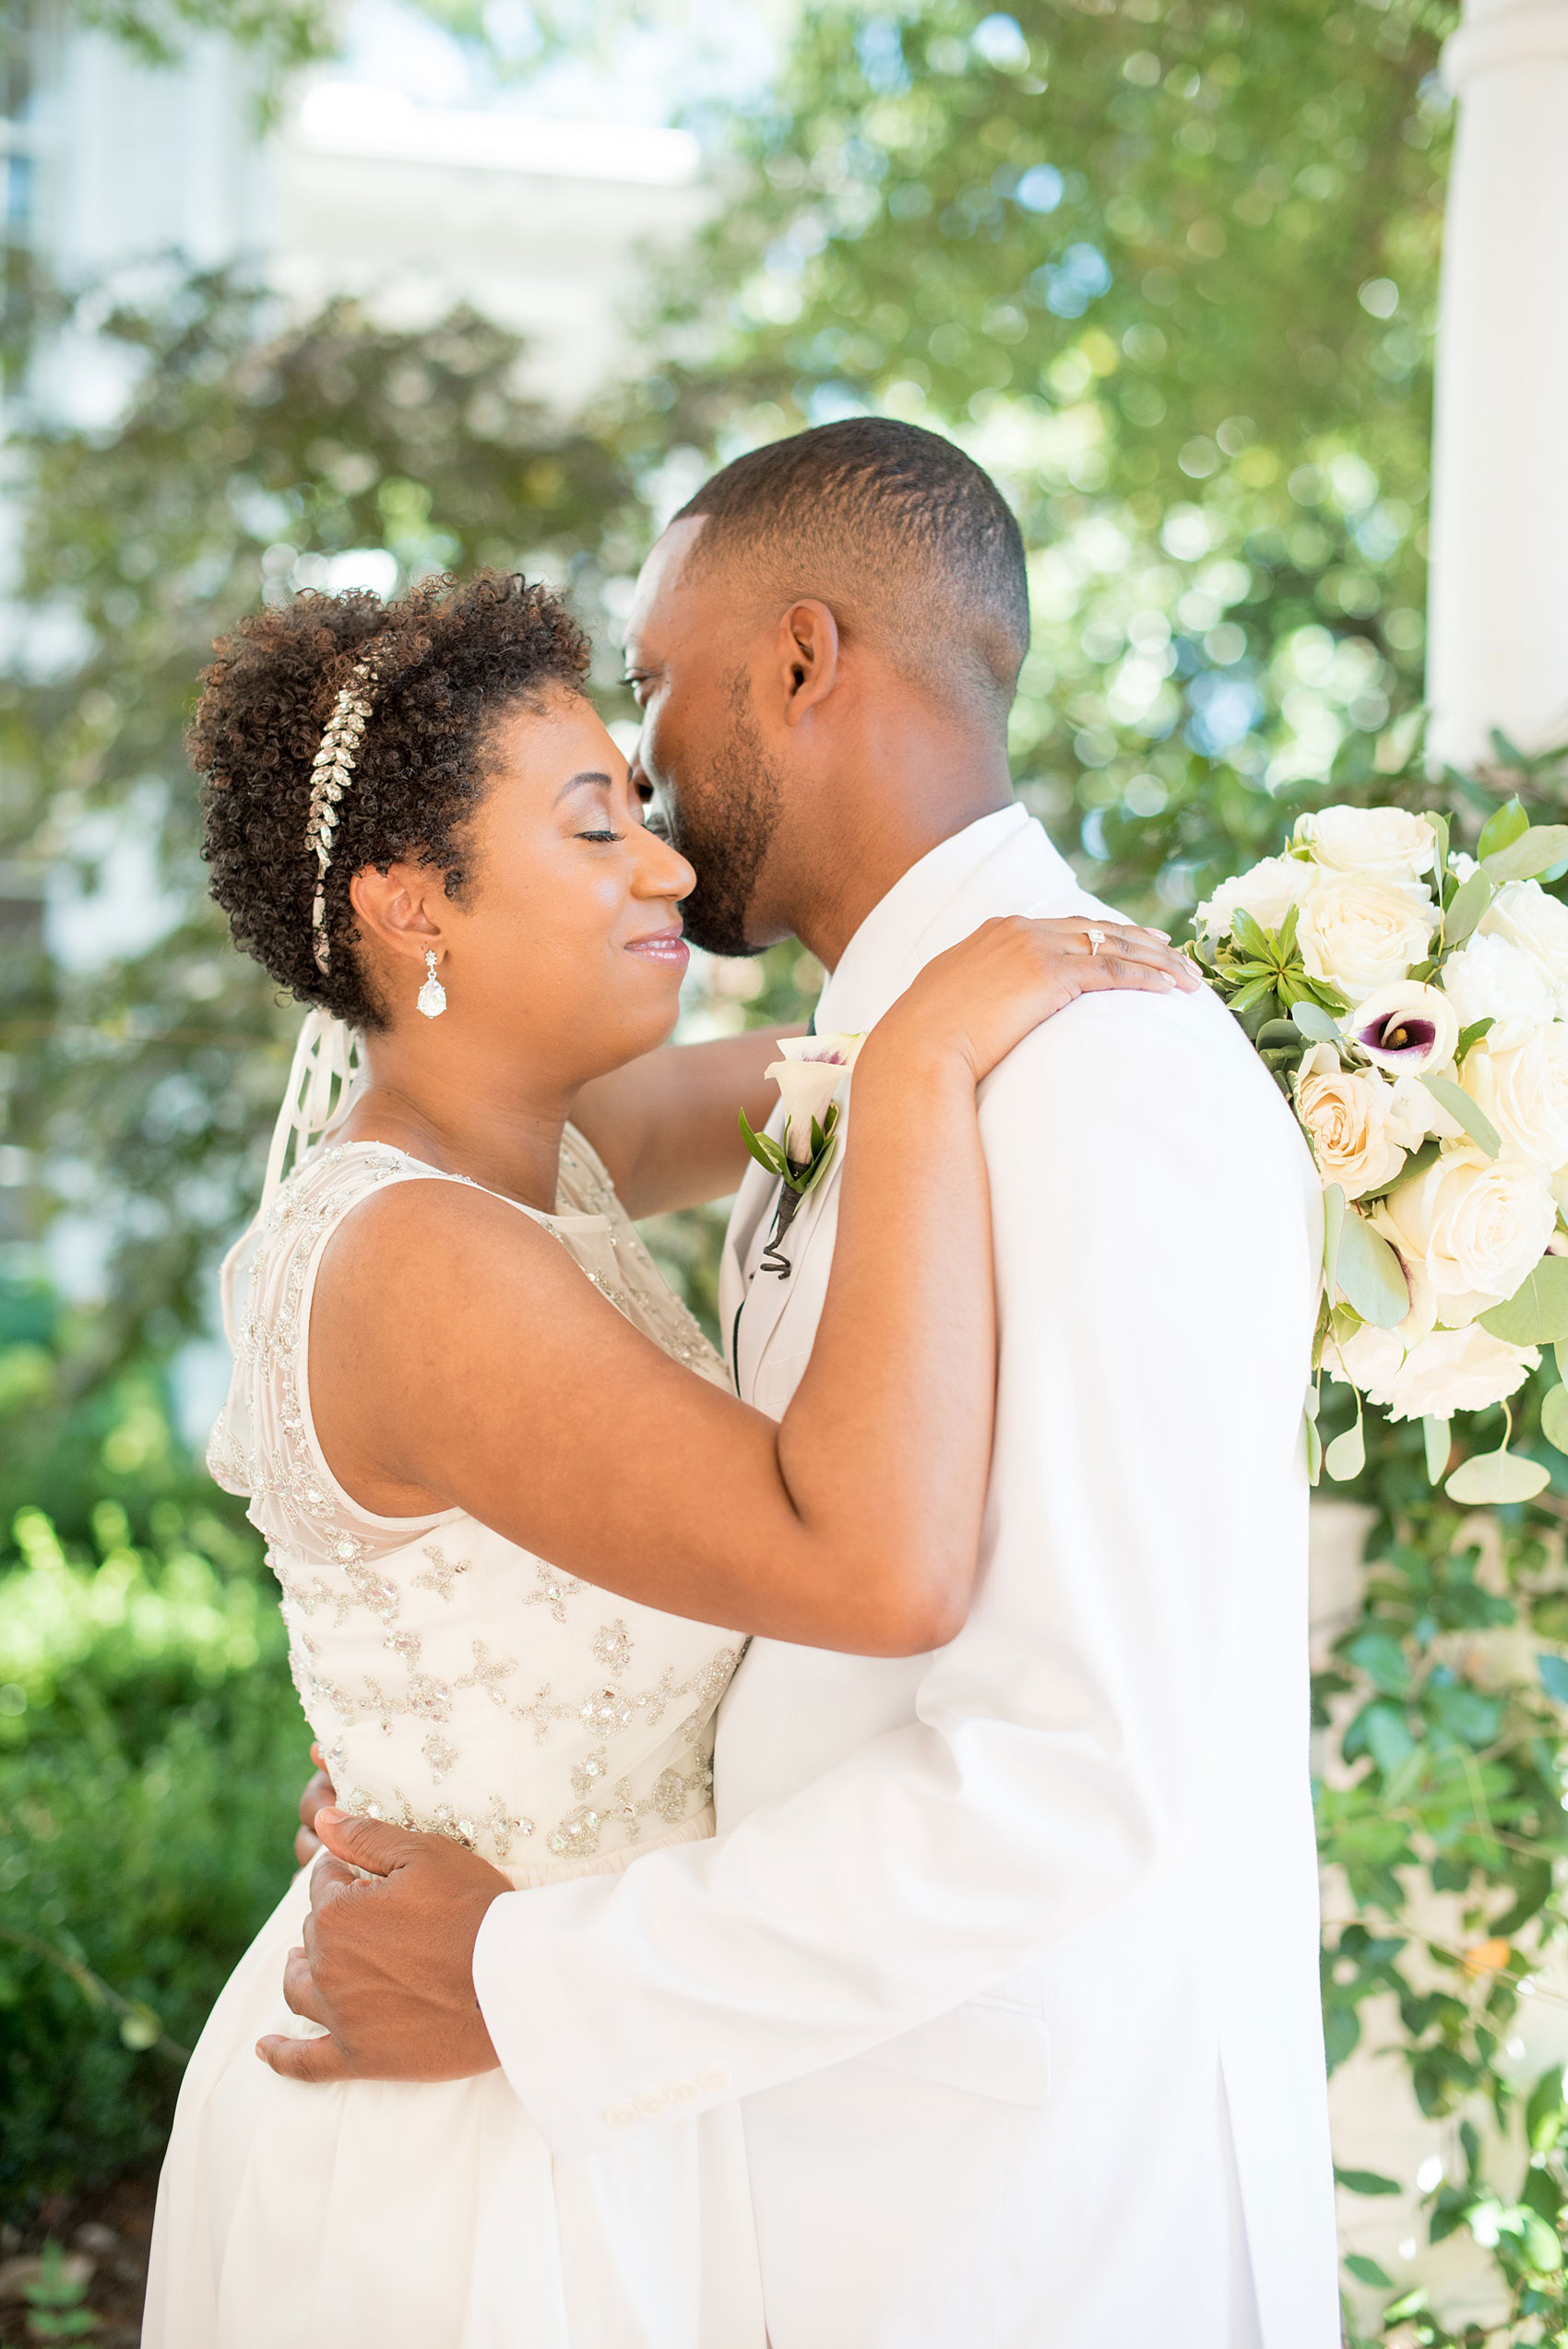 Mikkel Paige Photography pictures of a wedding at Leslie-Alford Mim's House in North Carolina for a Mad Dash Weddings event. Photo of the bride and groom embracing in the garden.